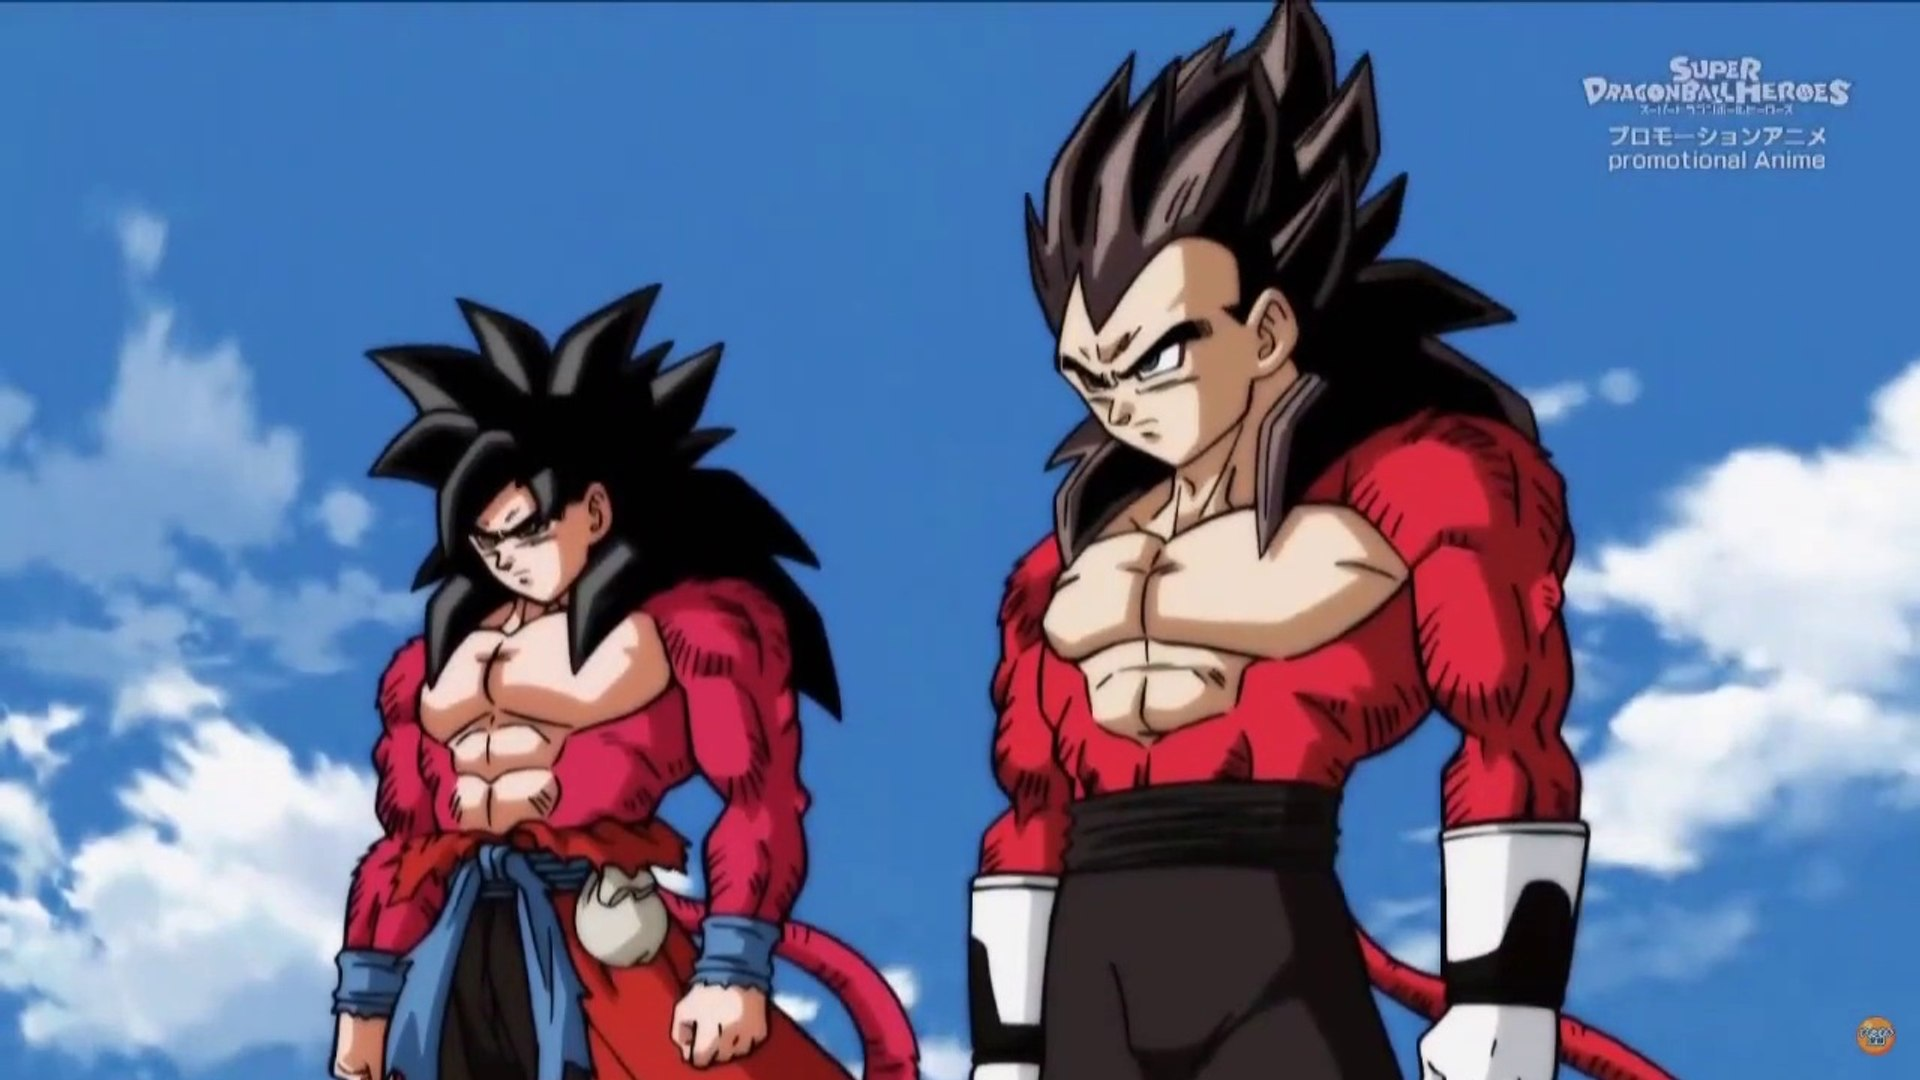 Dragon Ball Heroes Episode 5 Video Dailymotion